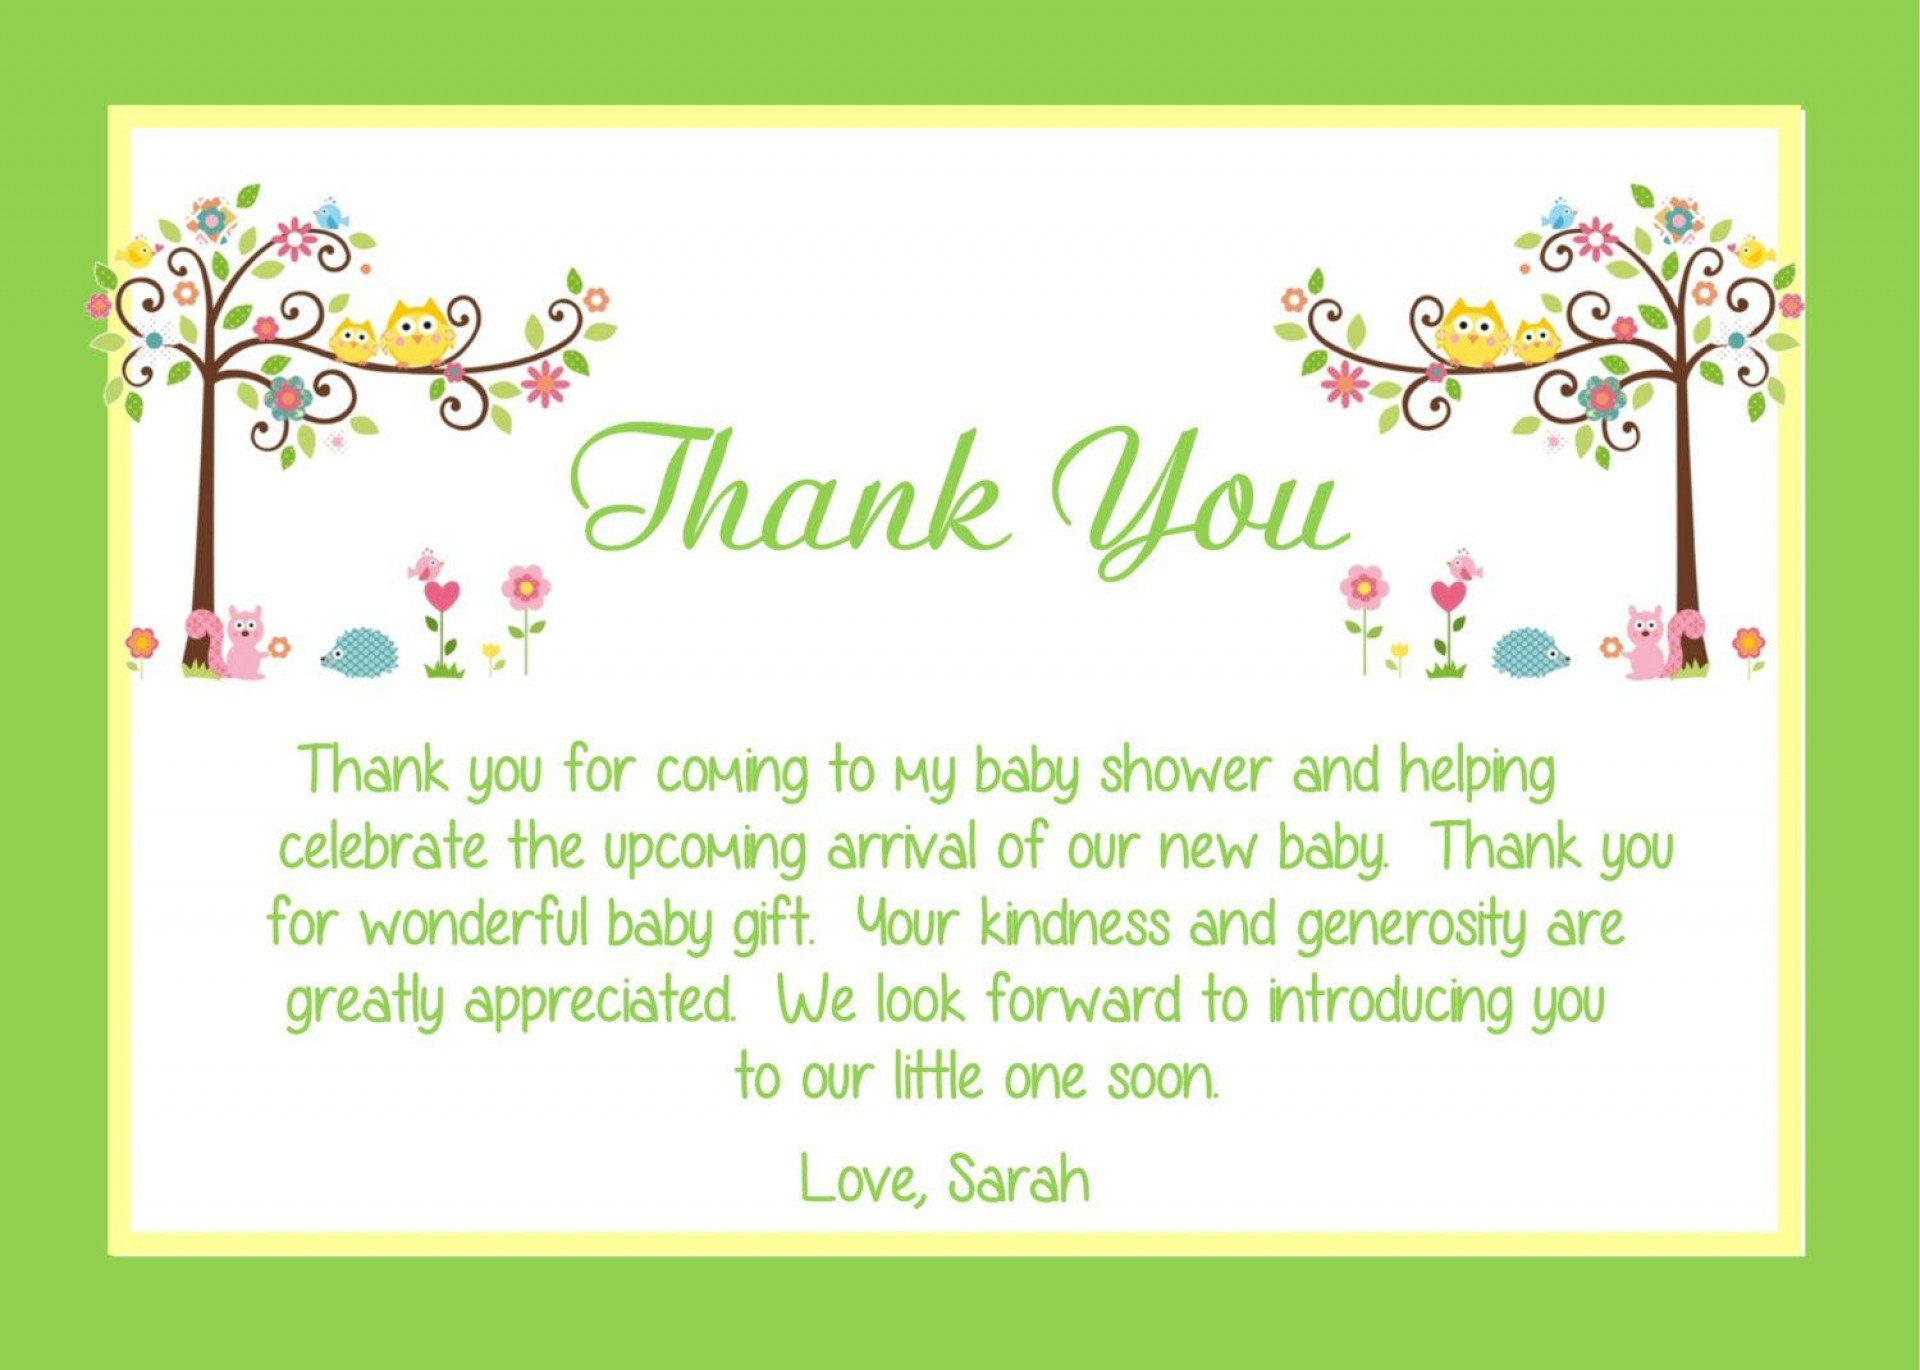 001 Beautiful Thank You Note Wording For Baby Shower Gift Sample  Card Example Letter1920